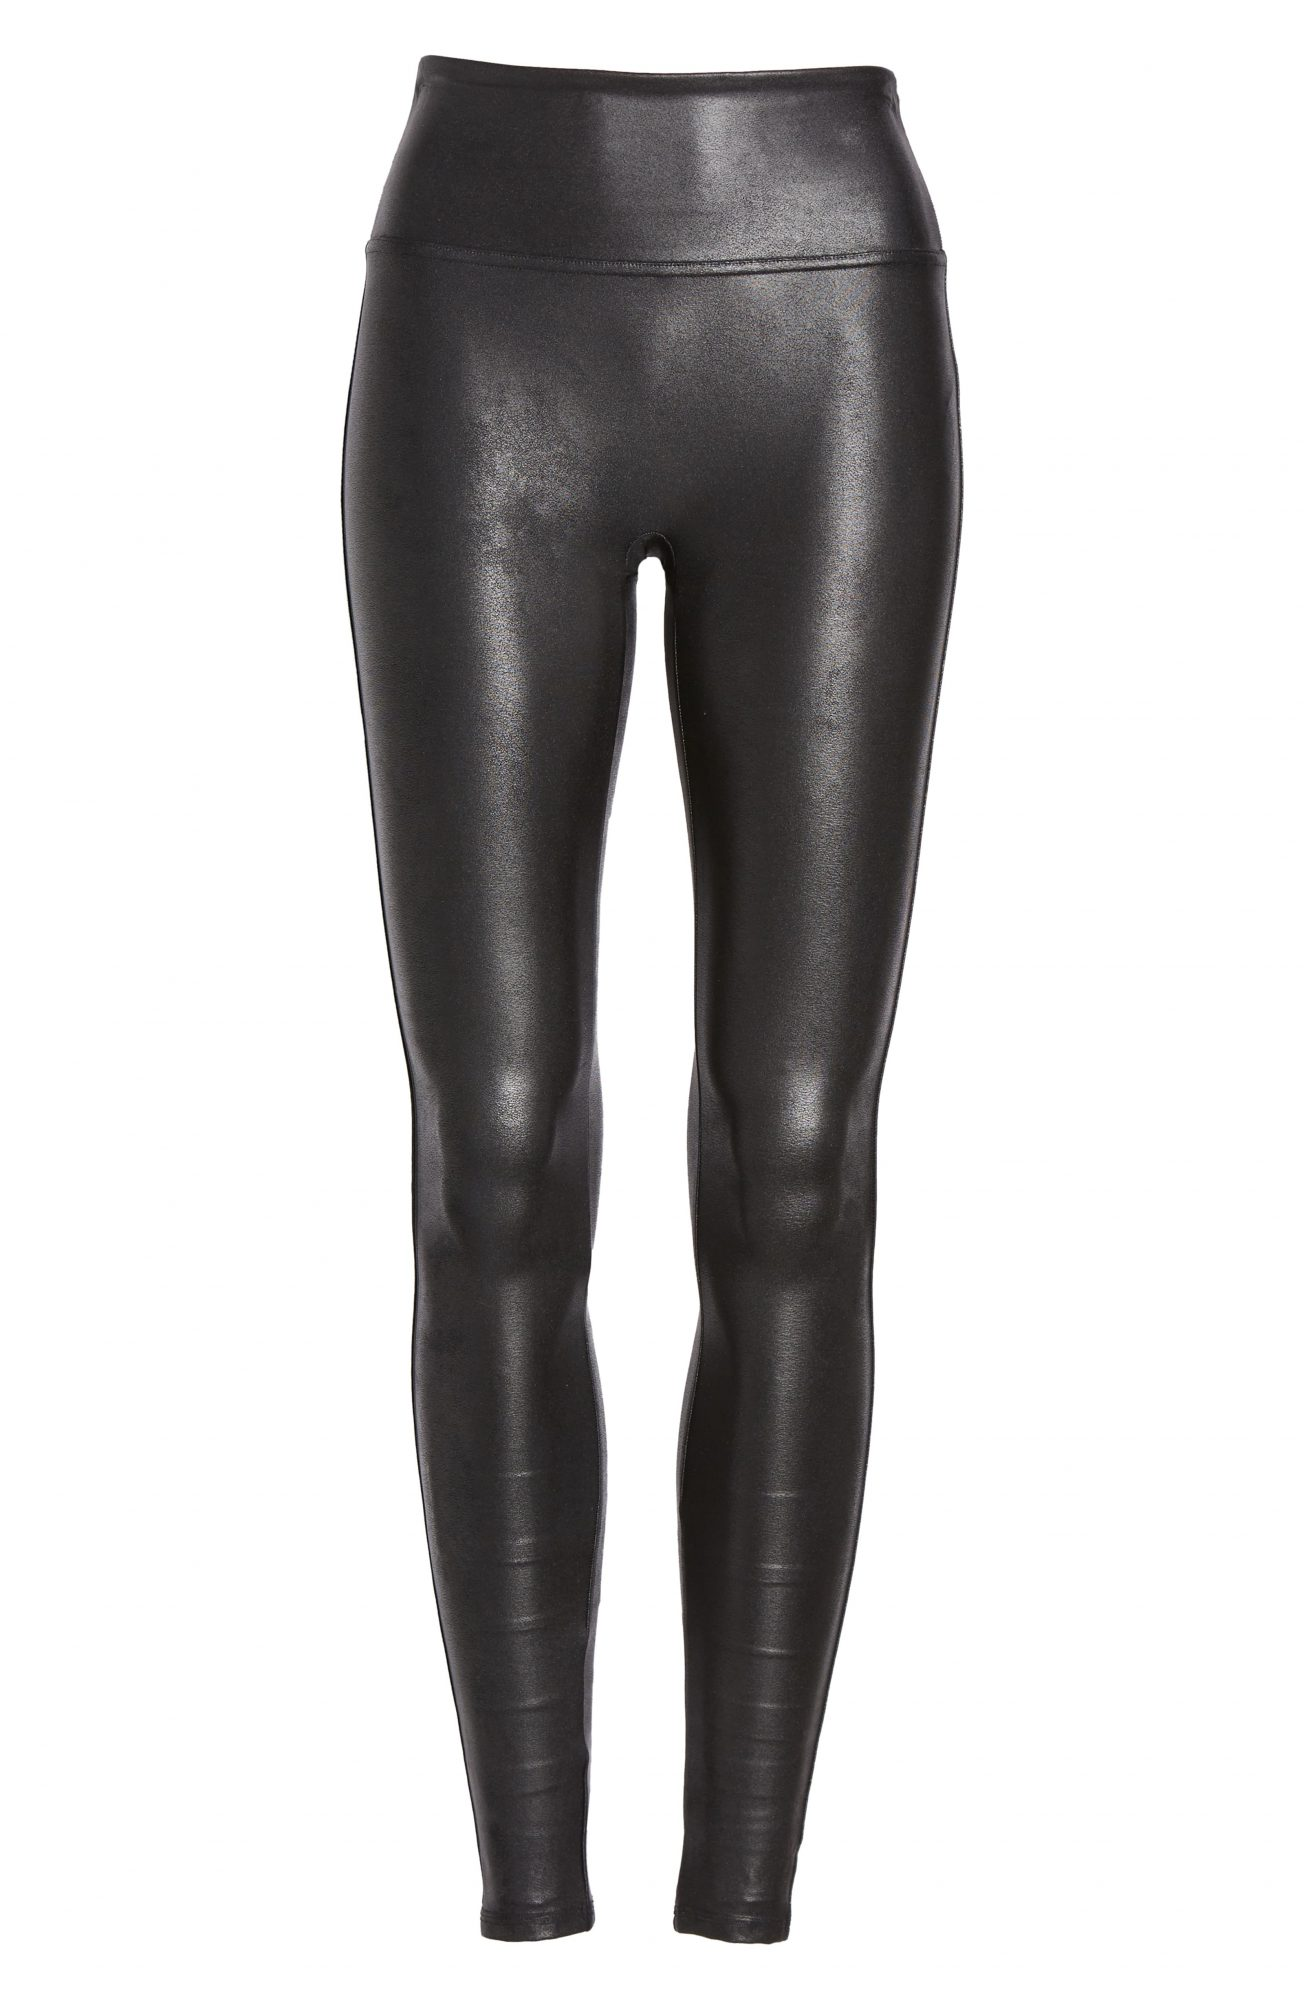 Spanx Faux Leather Leggings on Sale at Nordstrom Black Friday 2019 Event